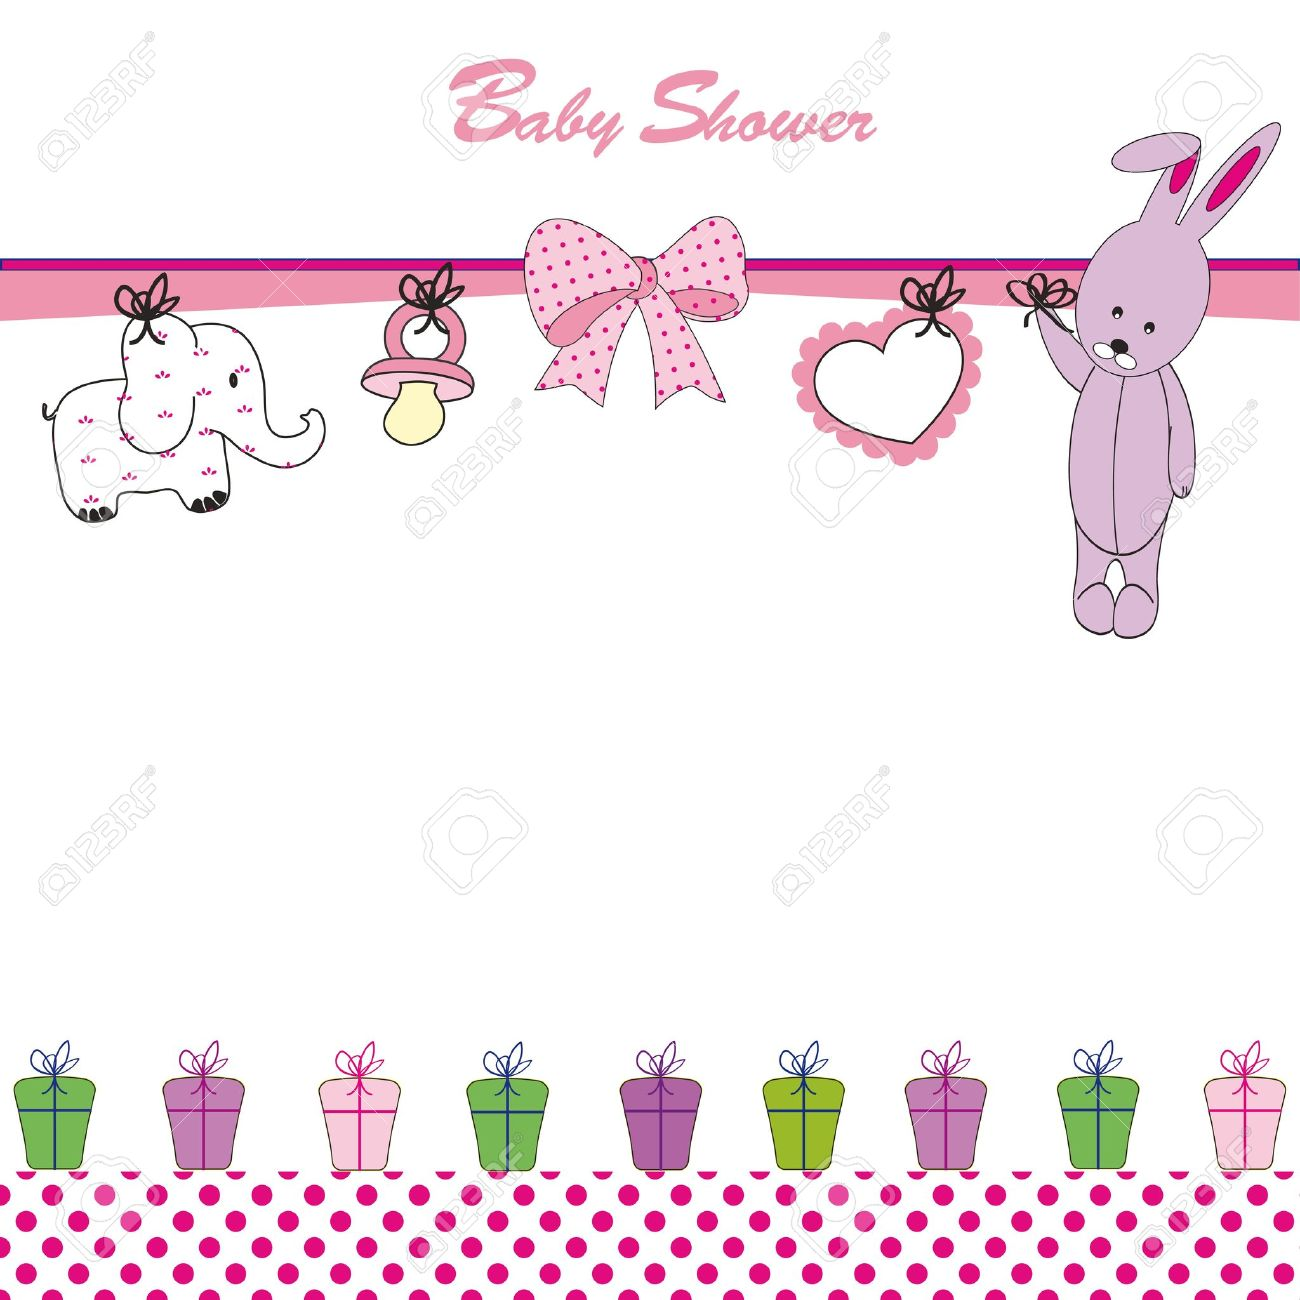 1300x1300 - Baby Background Pictures 26